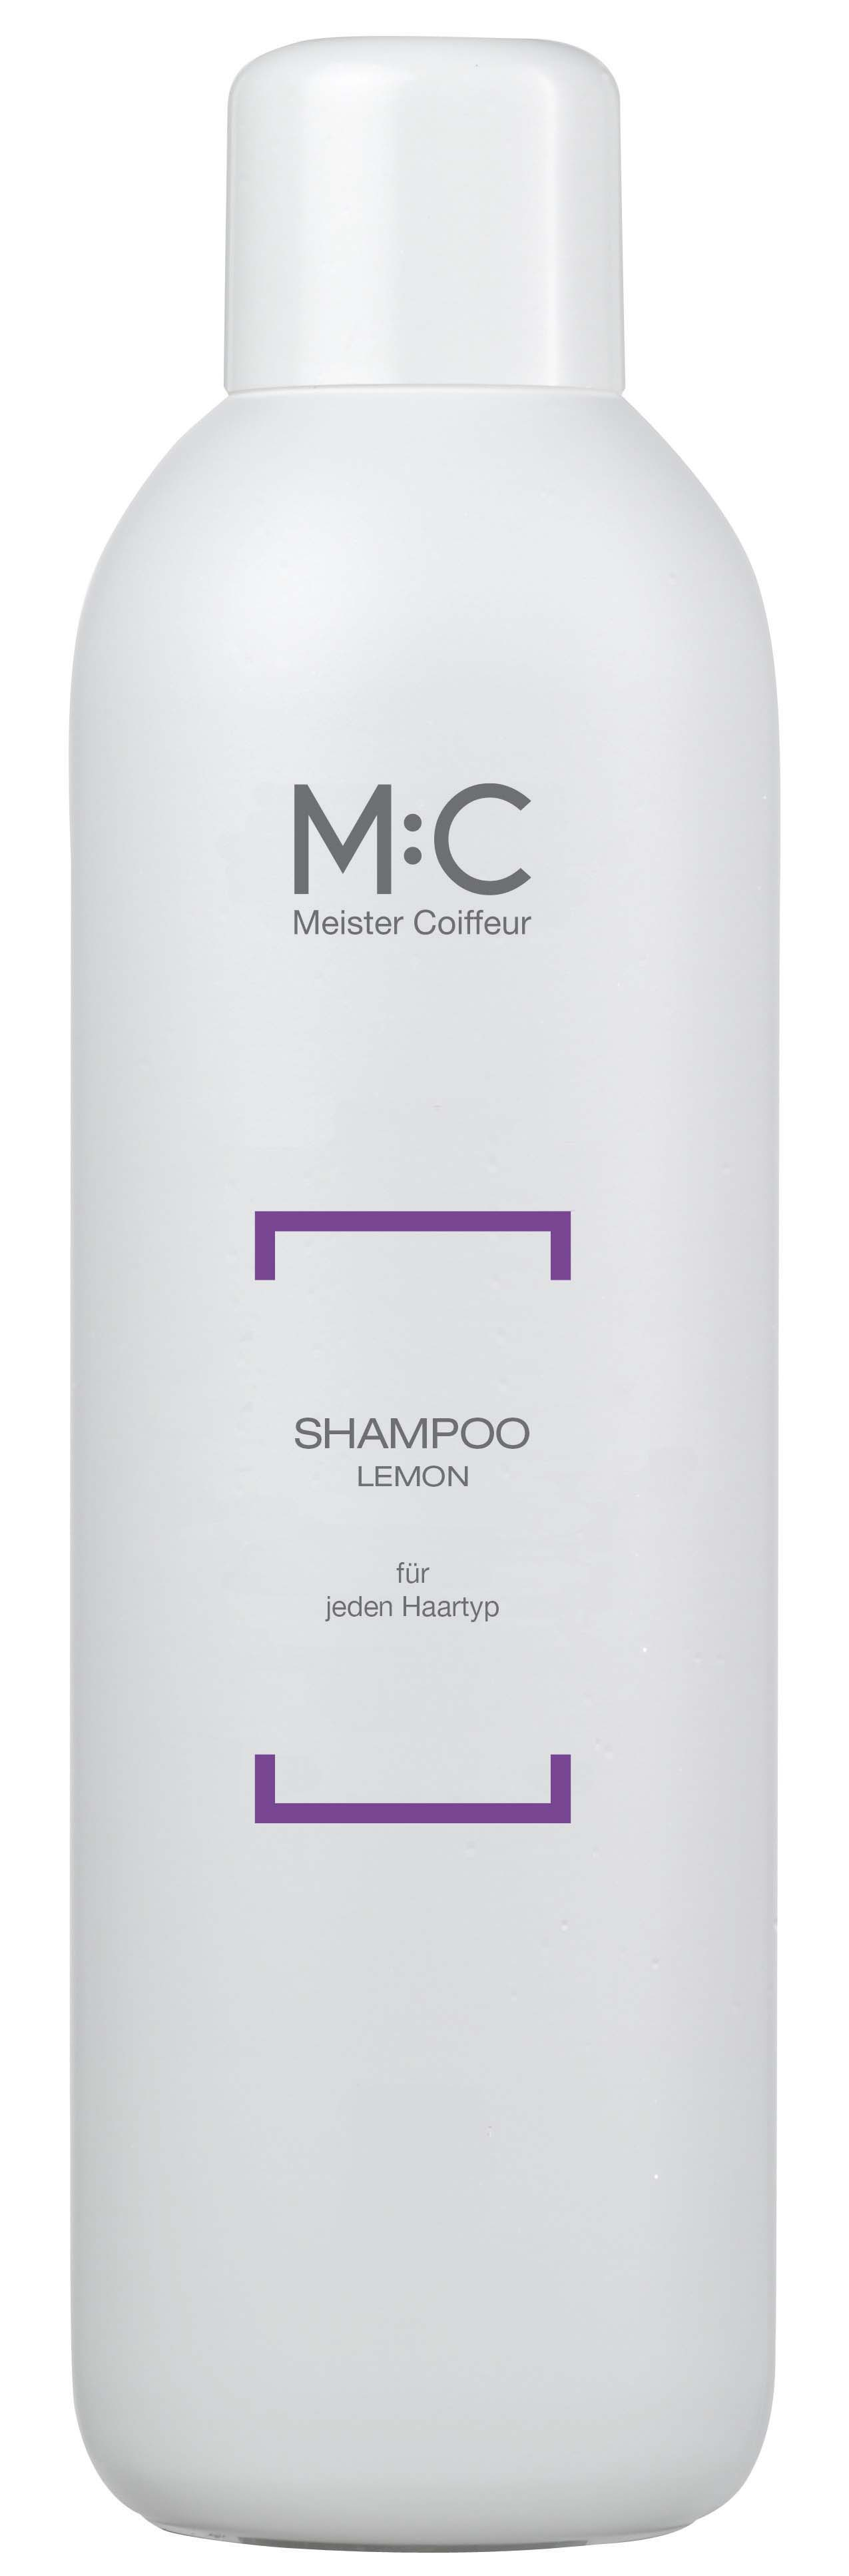 M:C Shampoo Lemon U 1.000 ml